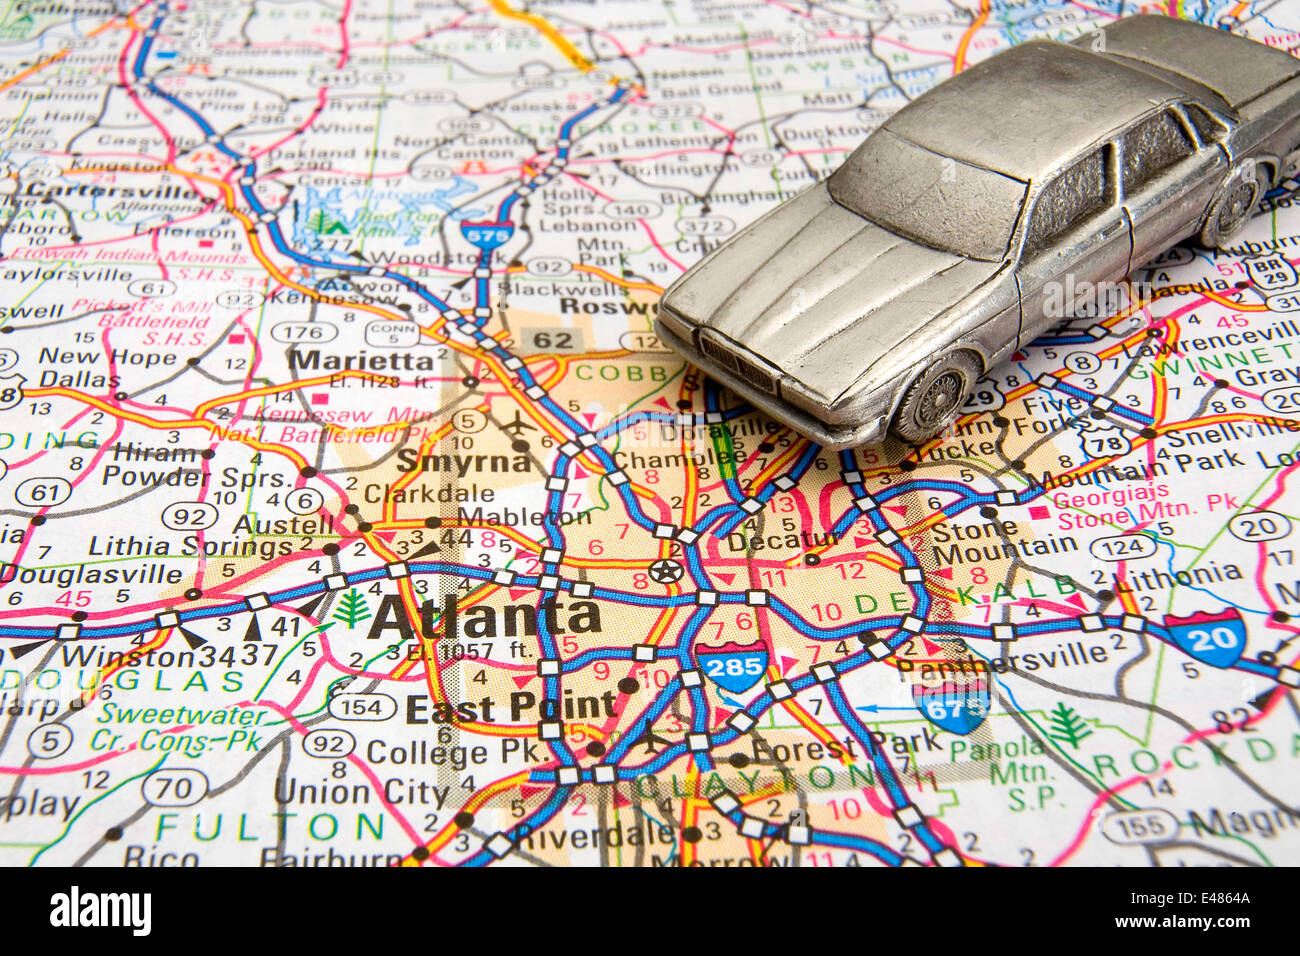 Model Sedan On A Road Map Of Atlanta Georgia Stock Photo Royalty - Road map georgia